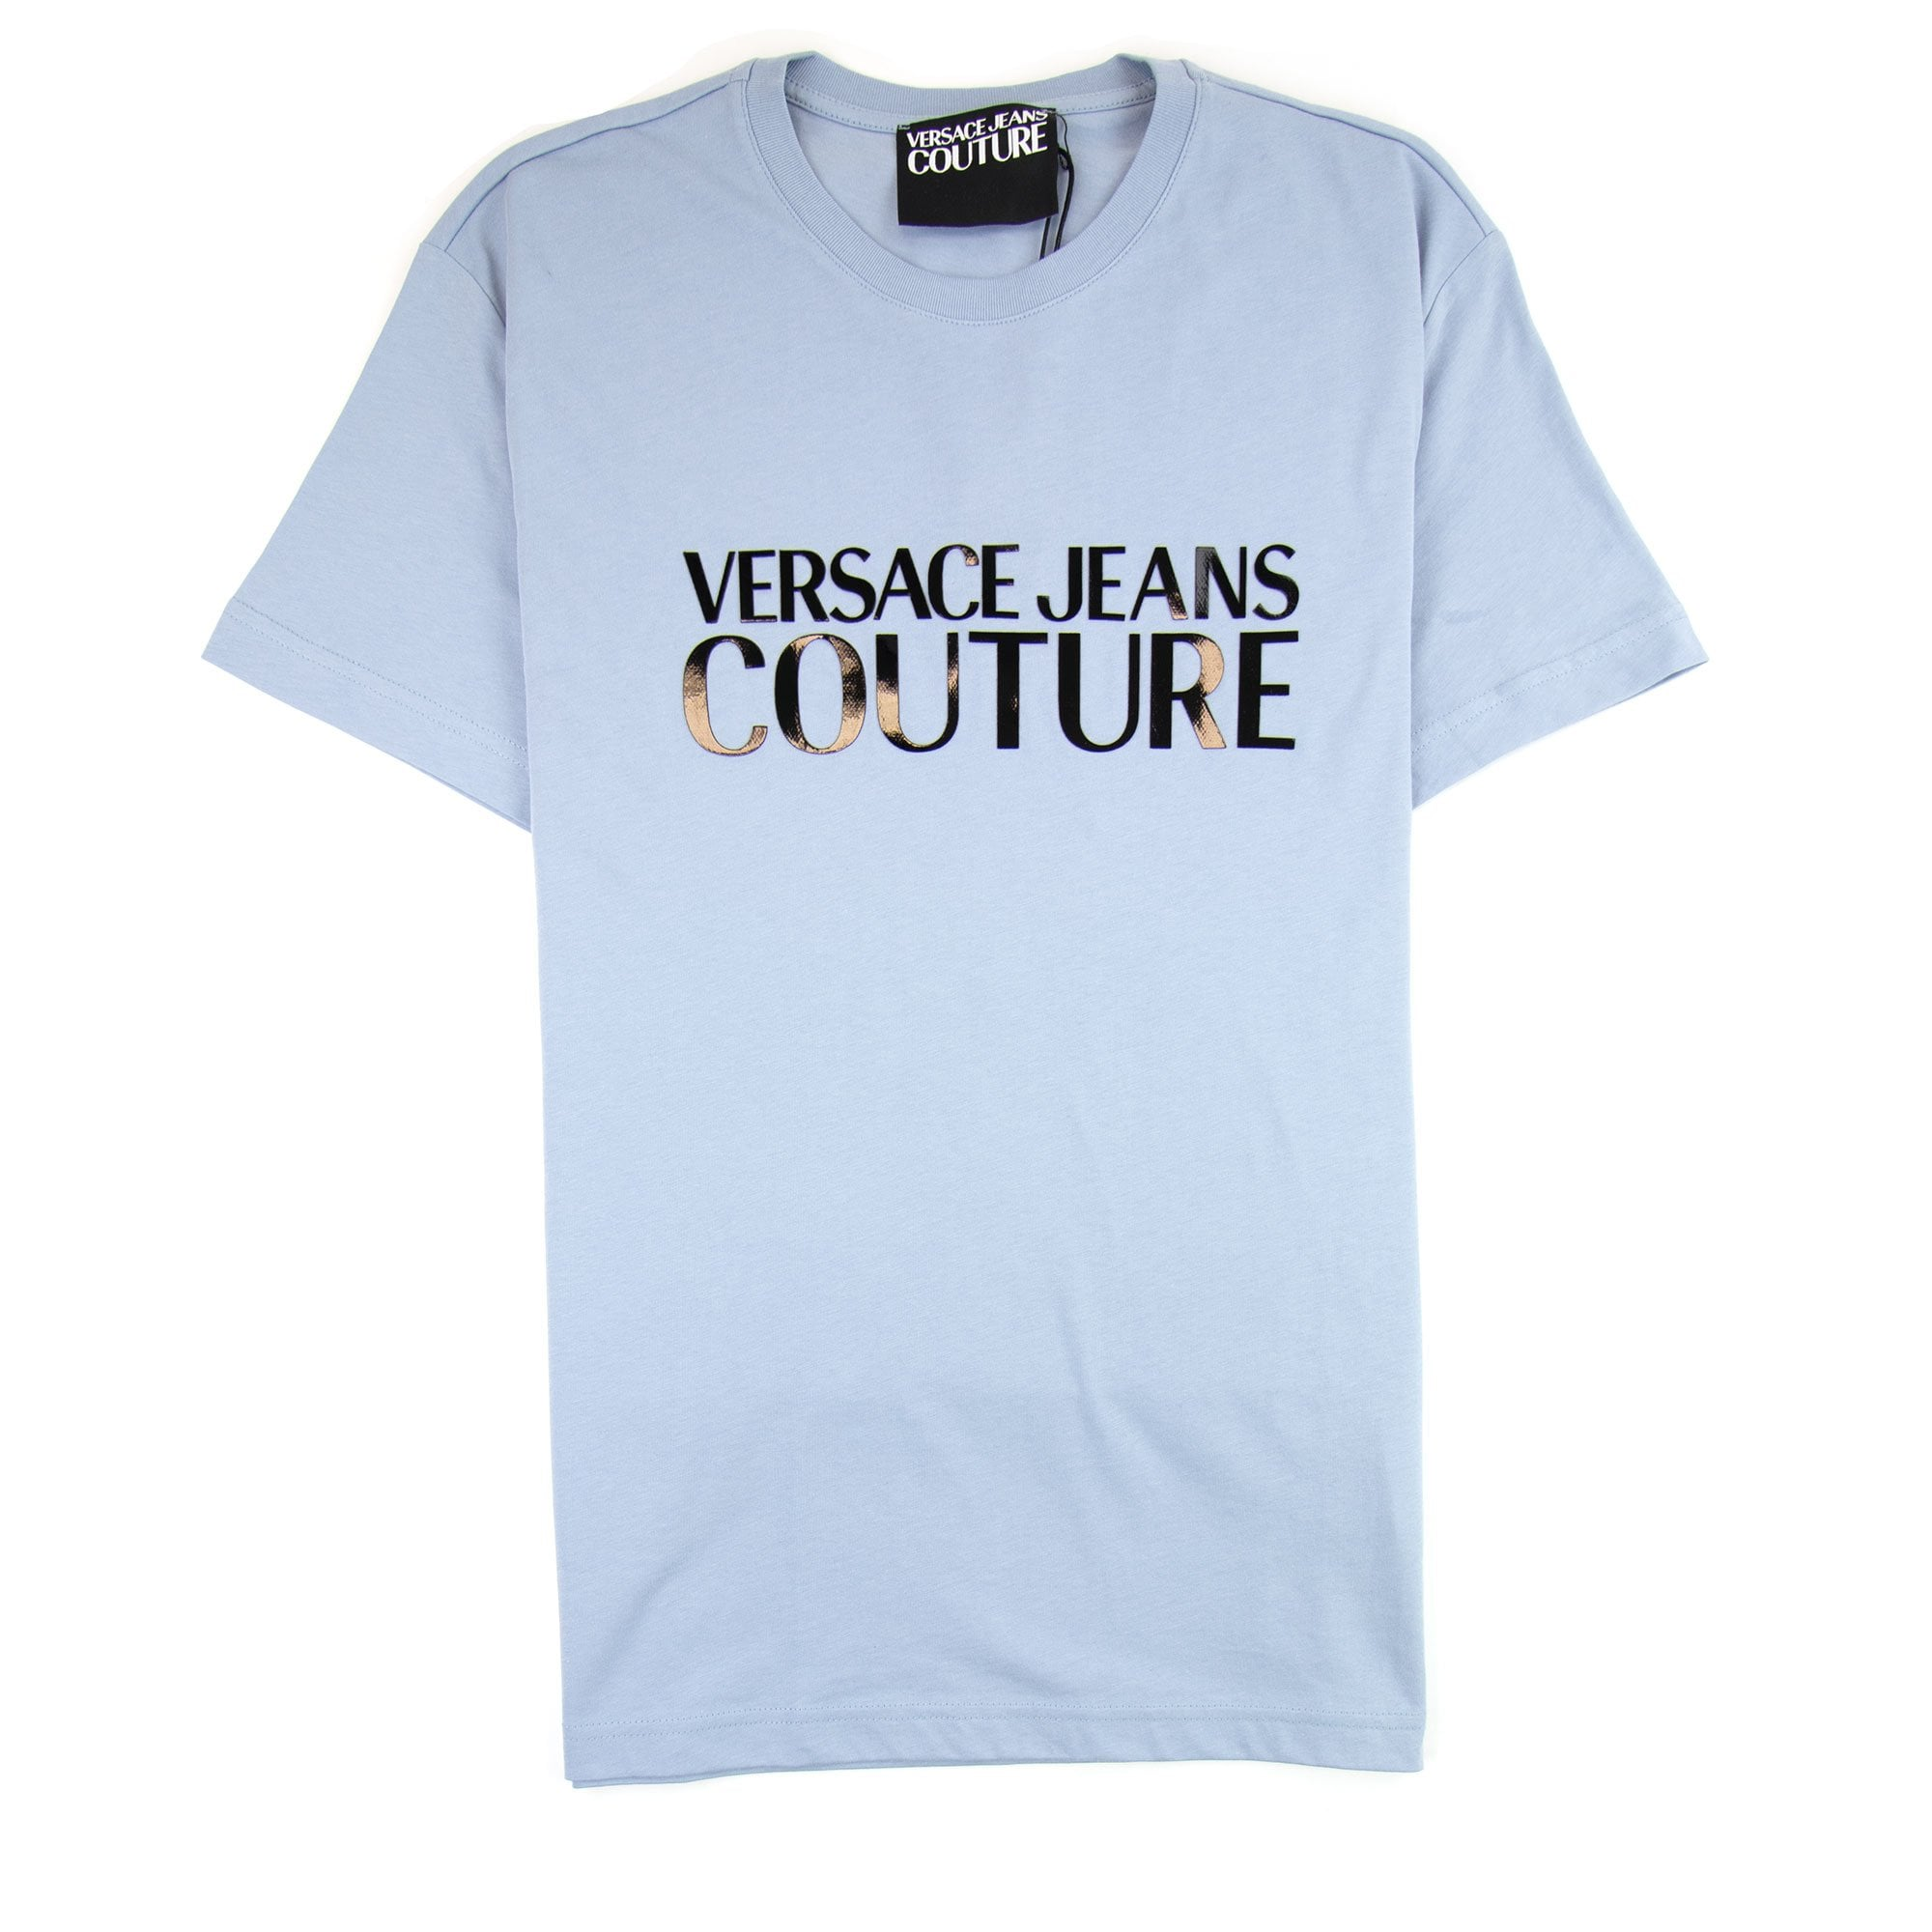 VERSACE JEANS COUTURE T-SHIRT VERSACE JEANS COUTURE | T-shirt | B3GUA7DH36609209